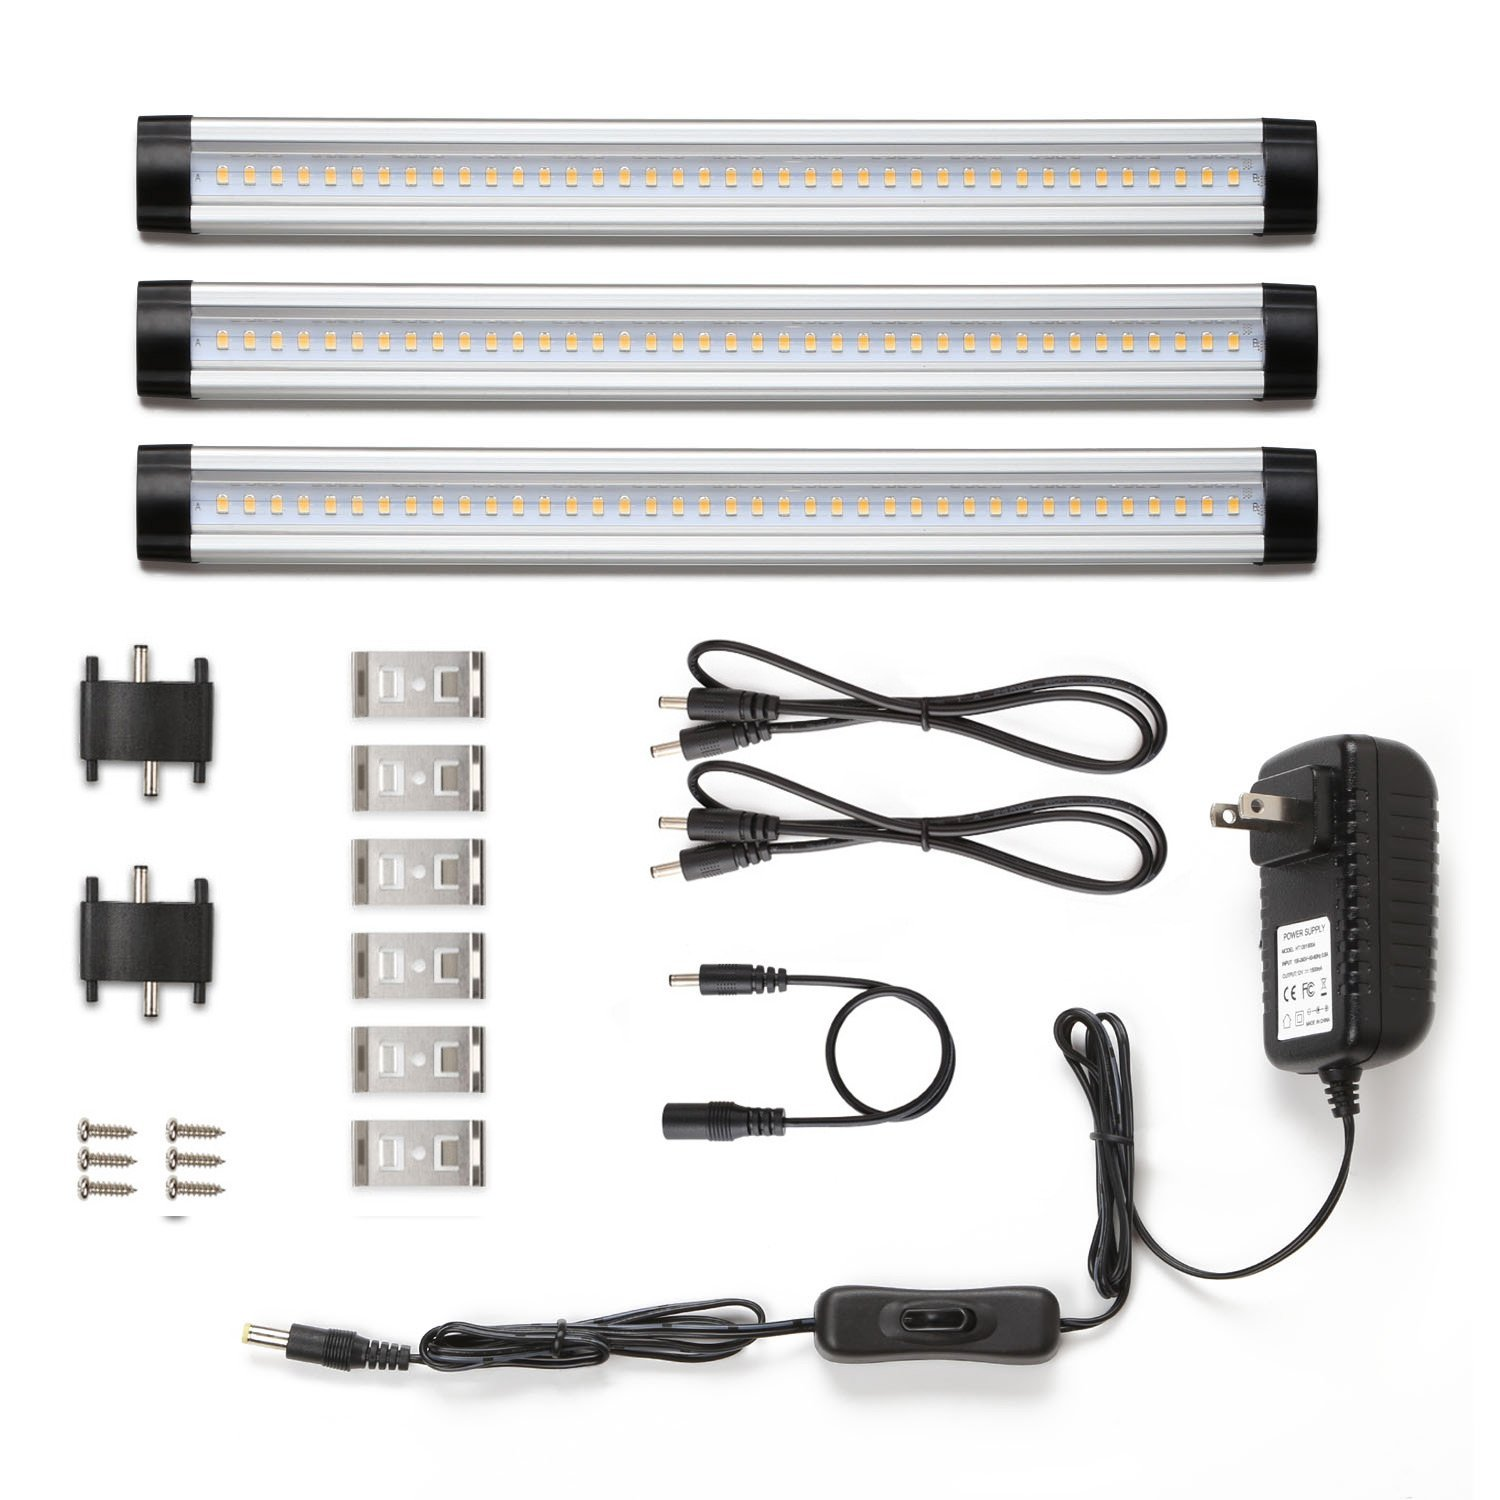 hight resolution of under cabinet led lighting 3 panel kit total of 12w 900lm 12v warm white 24w fluorescent tube equivalent all accessories included